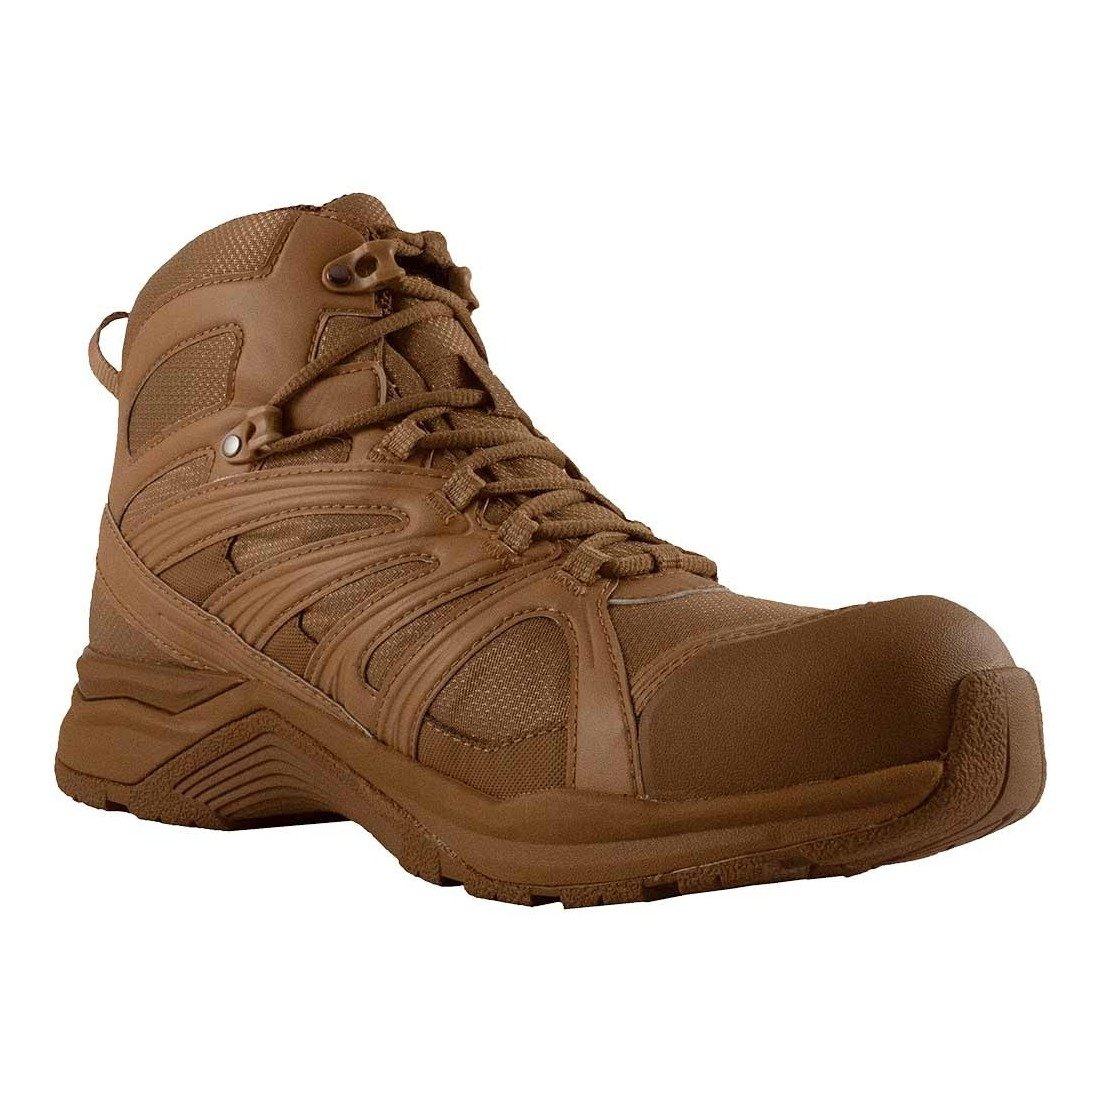 ALTAMA 353203 AStiefeltabad Trail - Mid WP Coyote 38 (6.0)